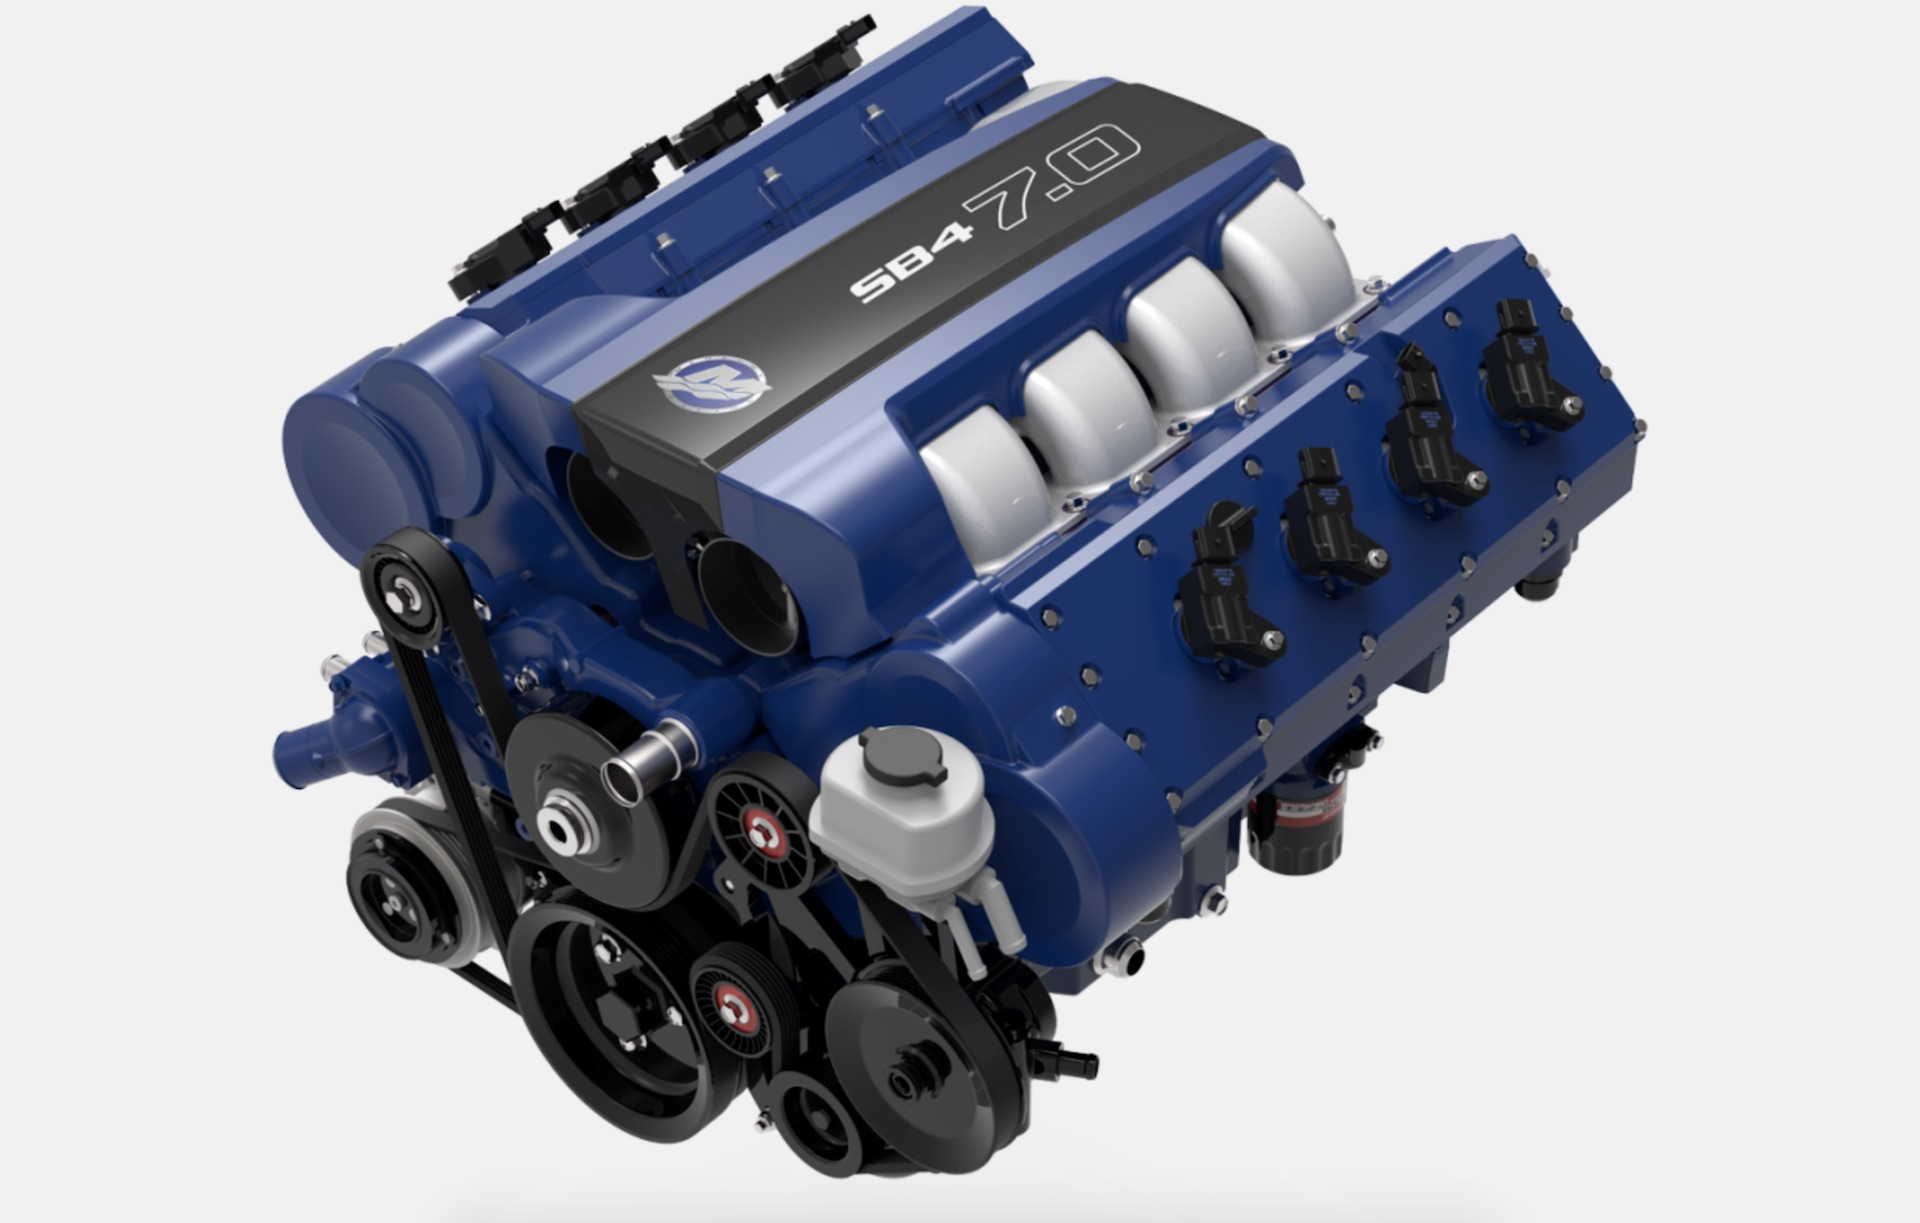 LS7-related crate engine delivers 750 naturally aspirated ...